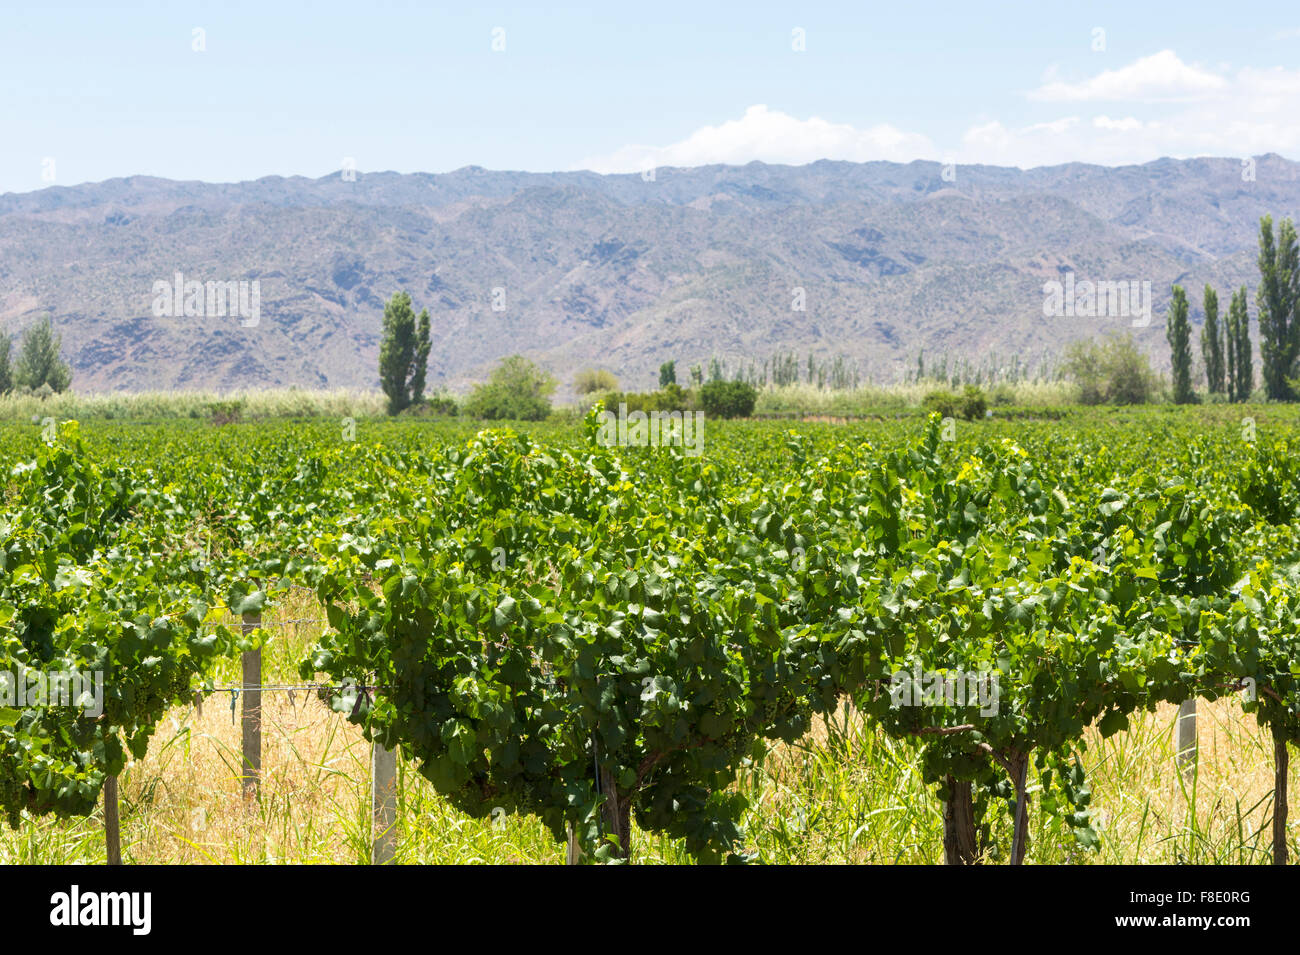 Detail of vineyards in Argentina - Stock Image